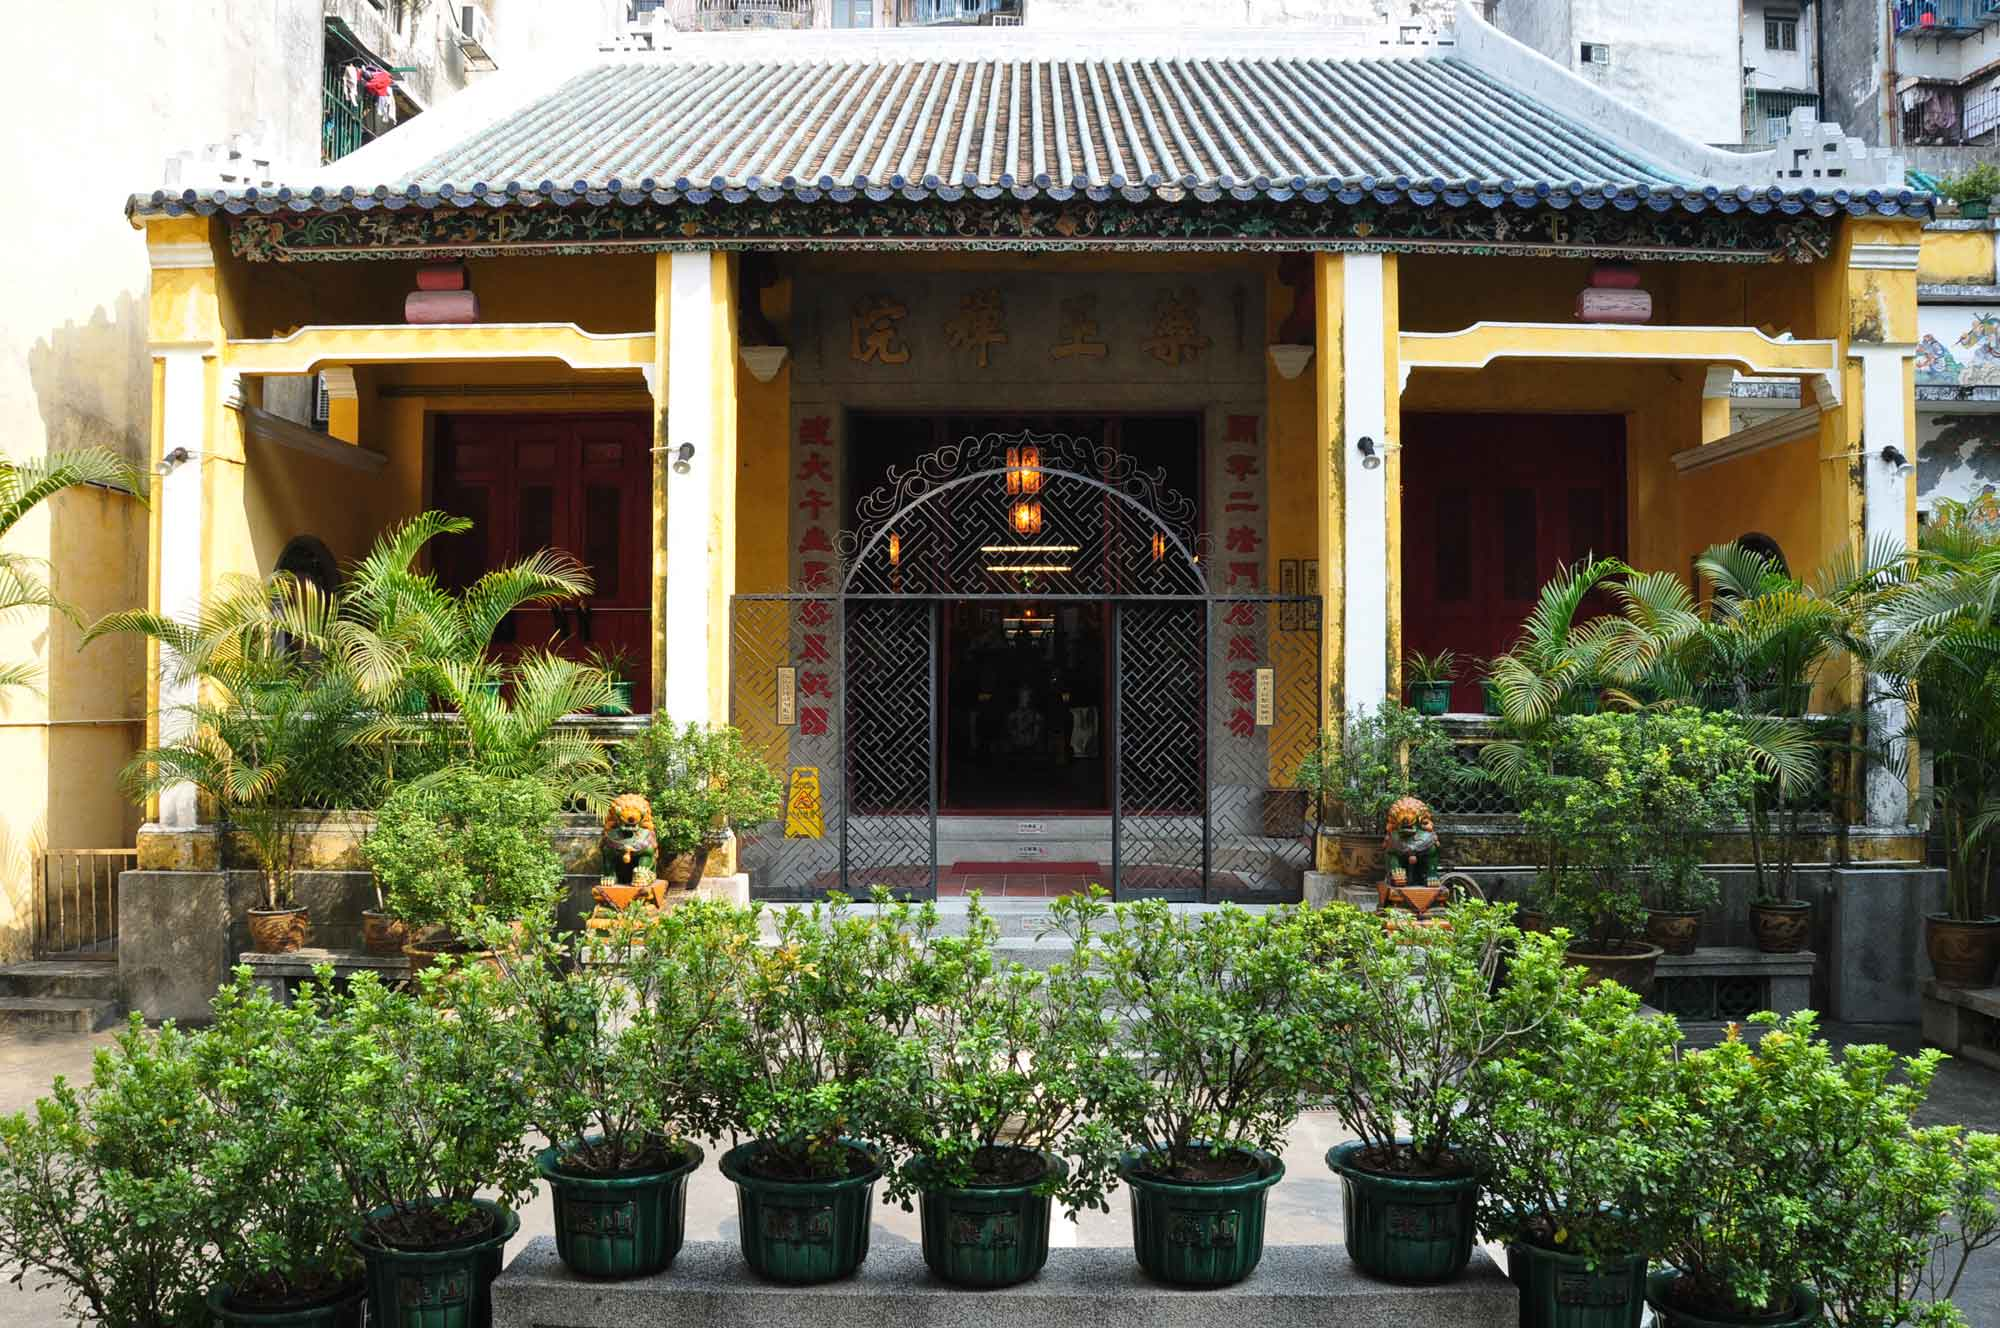 Macau Temples: Temple of the King of Medicine